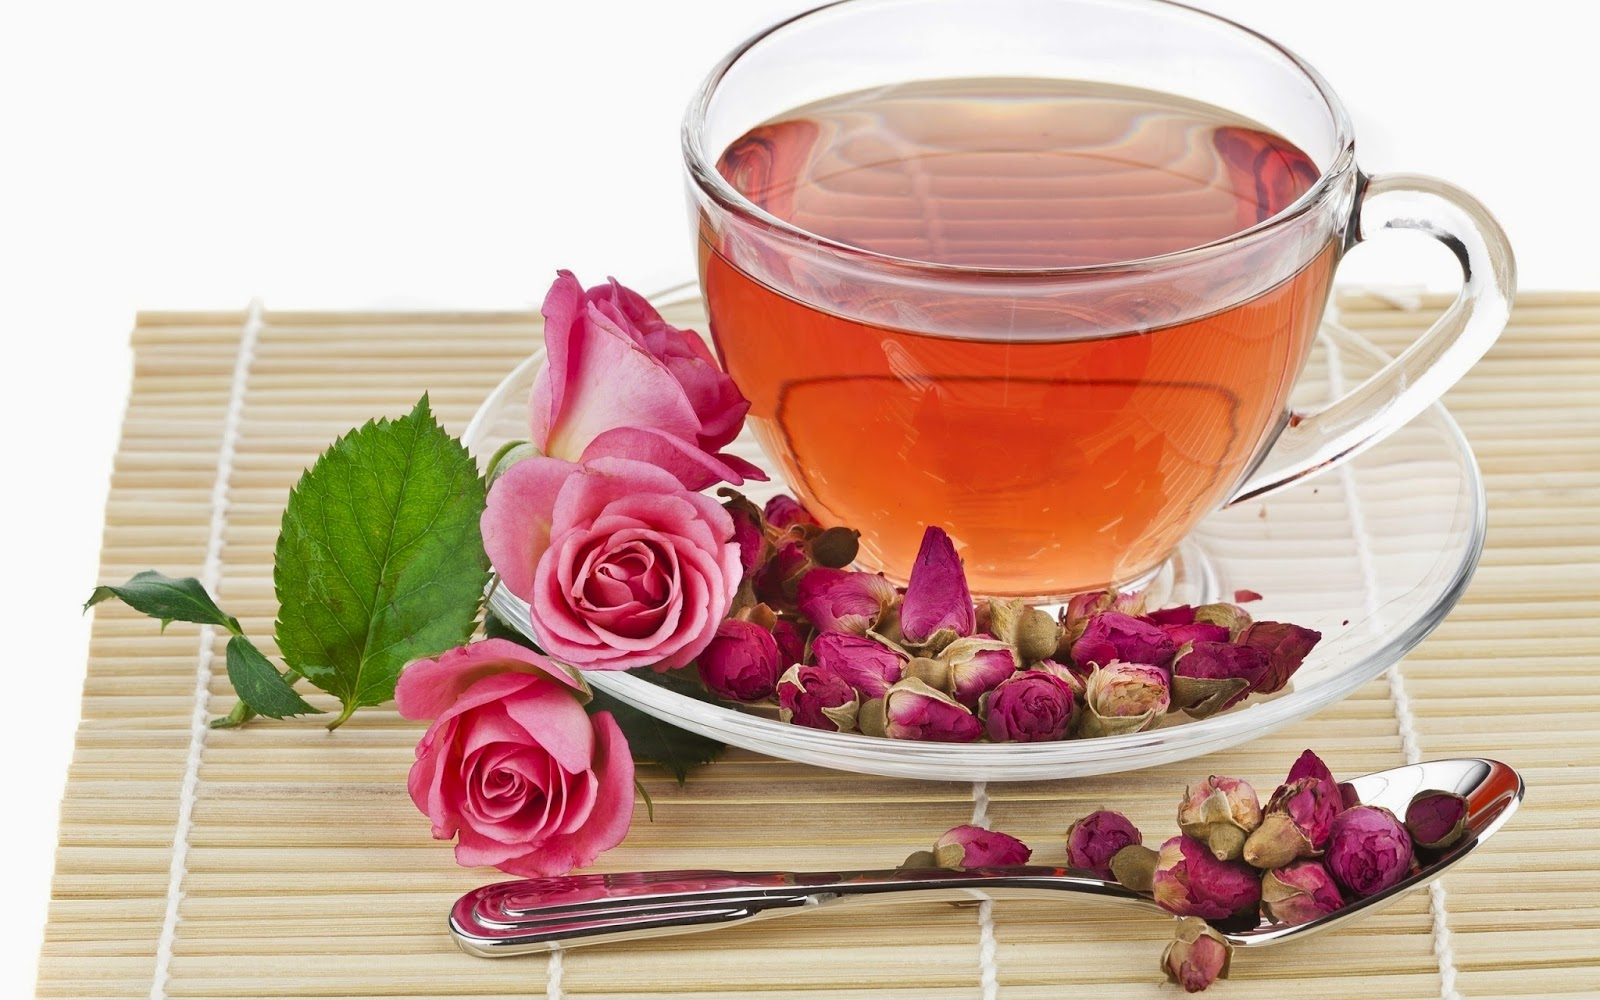 The following are the active constituents of rose petal tea: